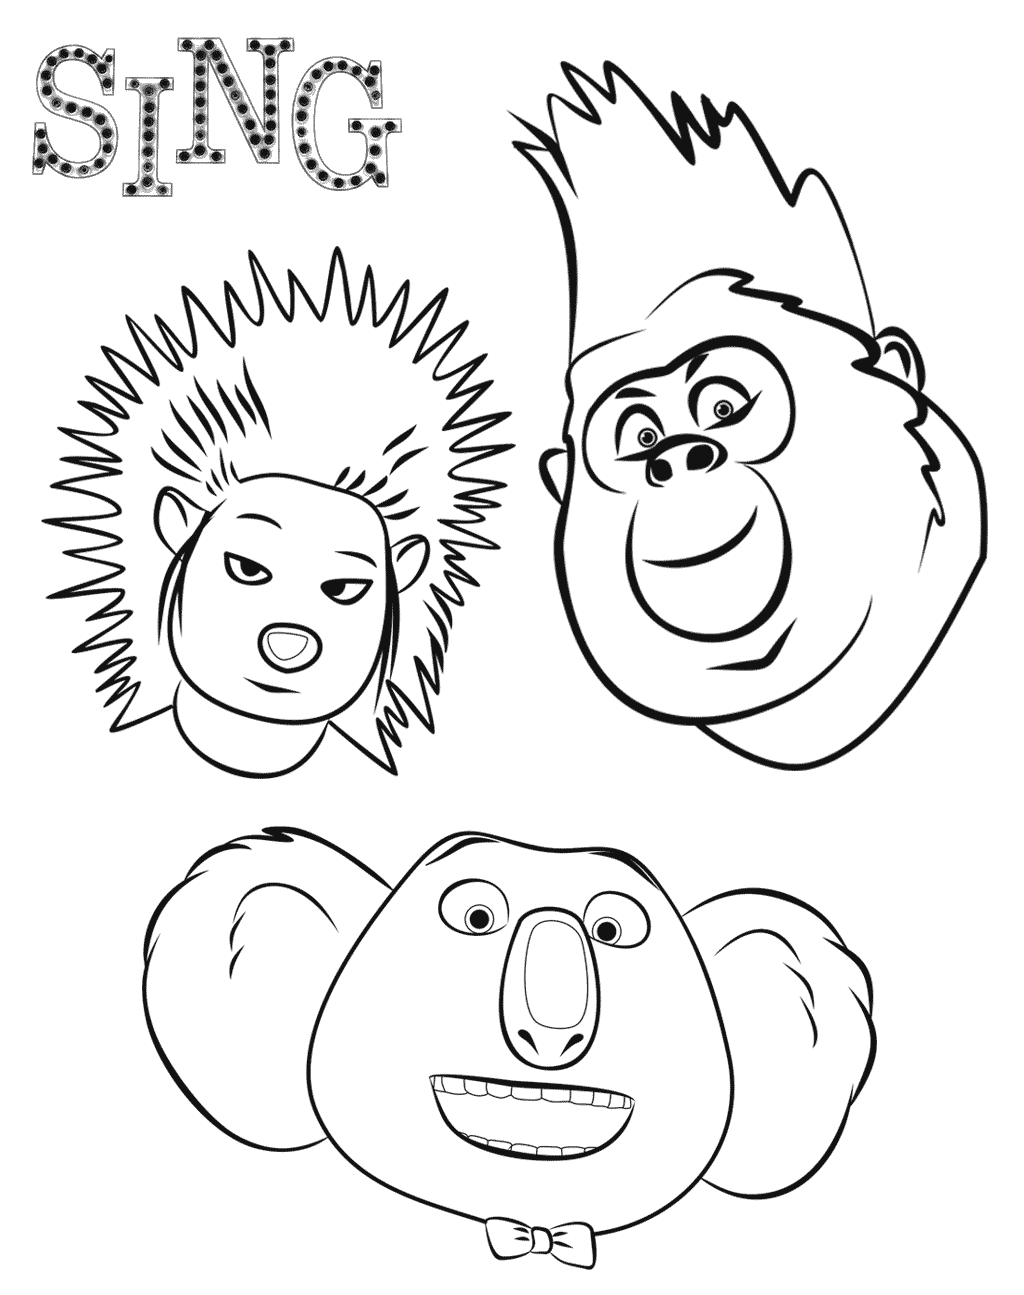 Free Sing coloring page to print and color